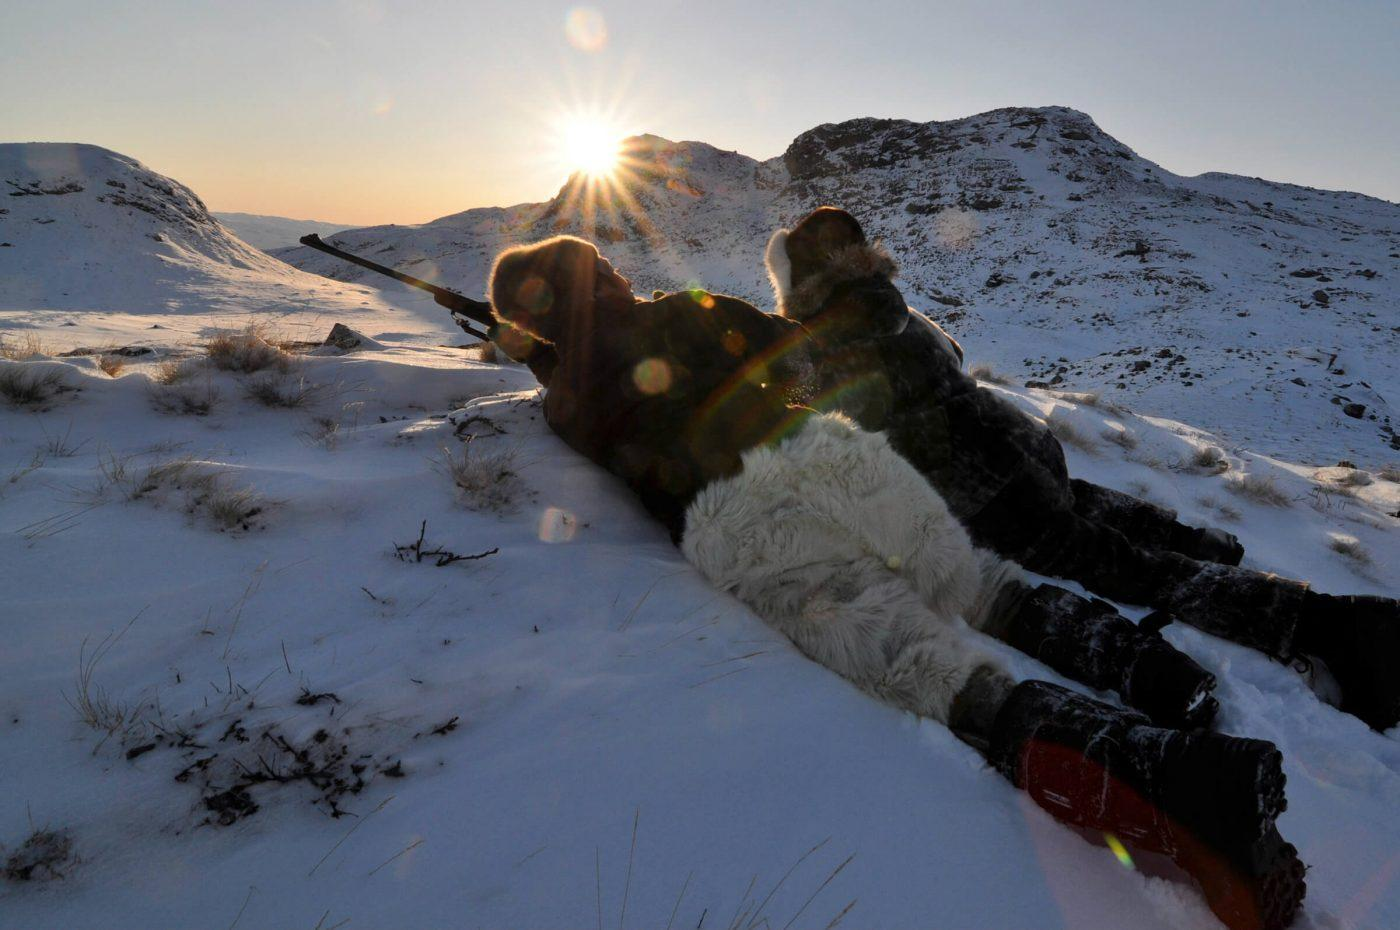 Johanne Bech hunting for musk oxen near Kangerlussuaq in Greenland. Photo by Mads Pihl